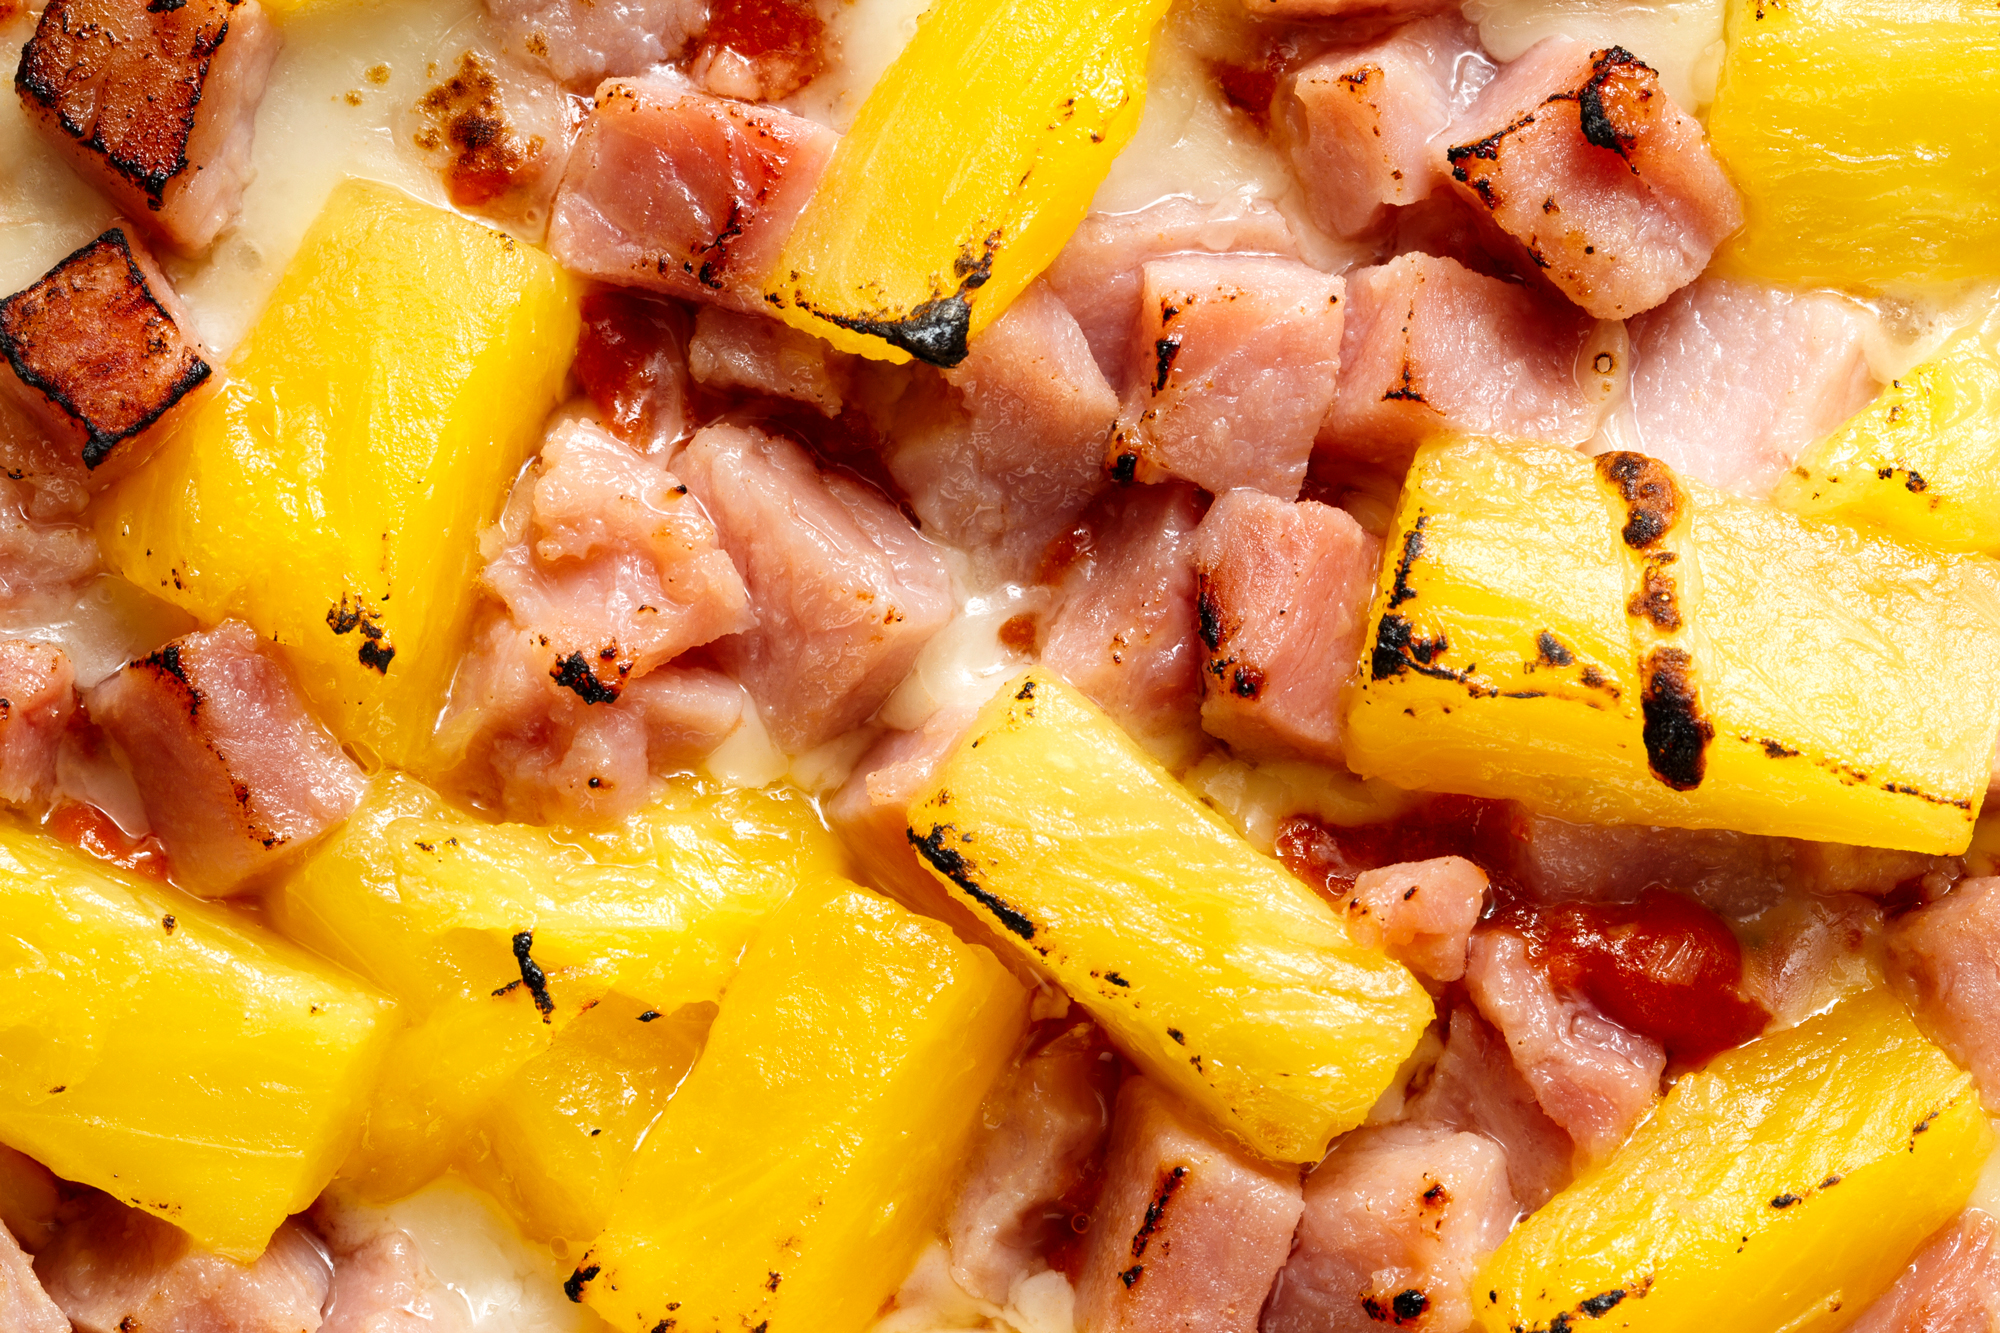 Close-up of a ham and pineapple pizza